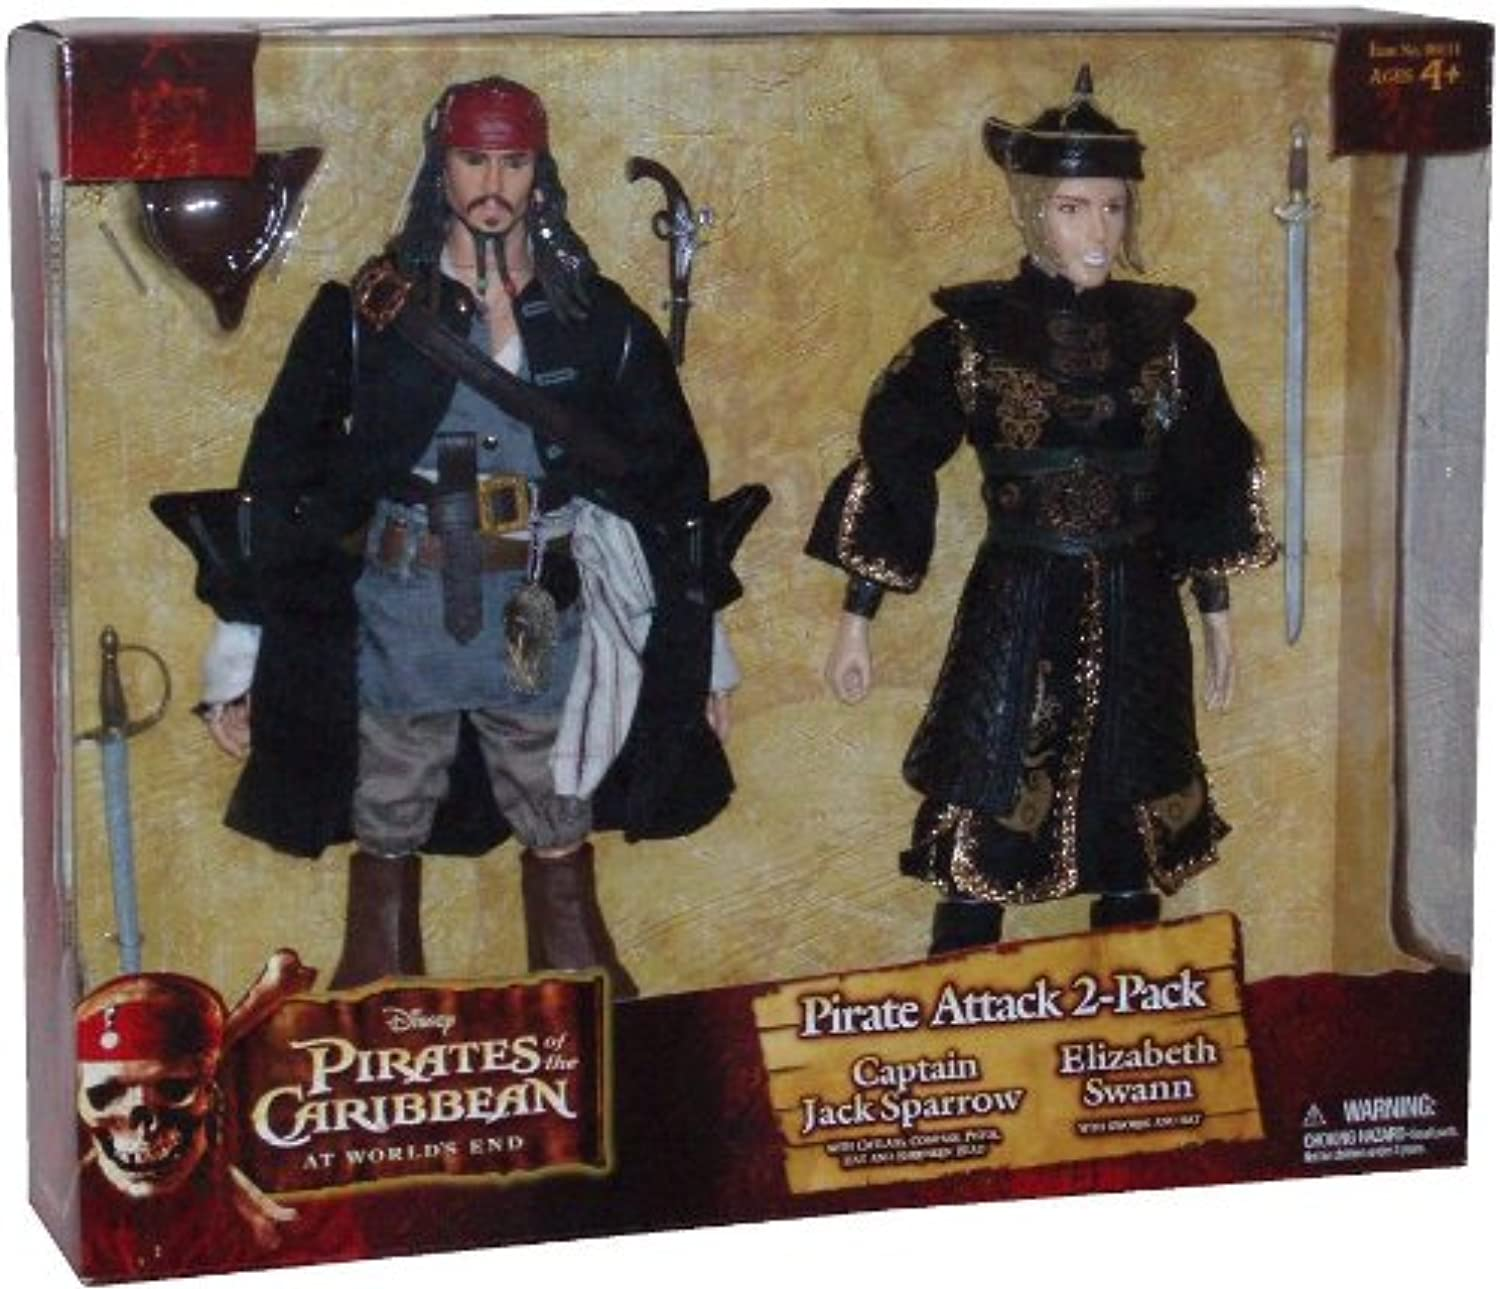 Disney Pirates of the Caribbean Movie Series At World's End 12 Inch Tall Action Figure 2 Pack Set - Pirate Attack 2-Pack - Captain Jack Sparrow with Cutlass, Compass, Pistol, Hat and Shrunken Head Plus Elizabeth Swann with Swords and Hat by Zizzle